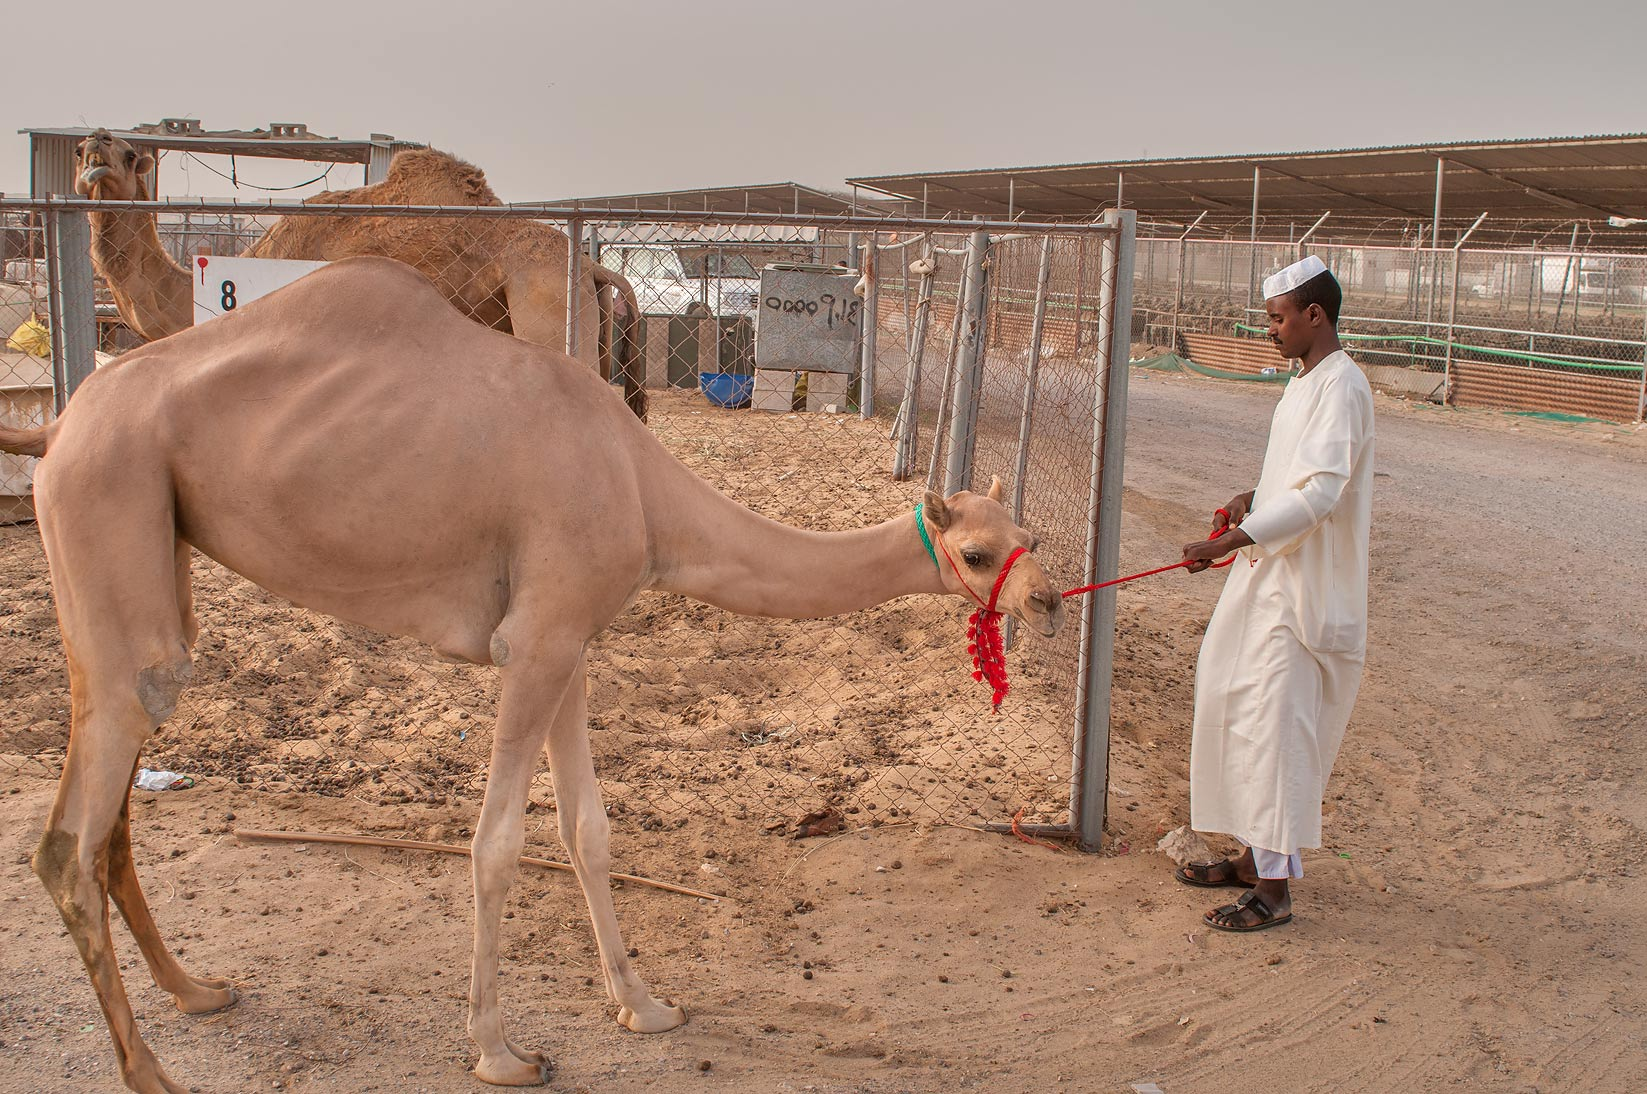 Shaved camel with smooth skin in Livestock Market, Abu Hamour area. Doha, Qatar